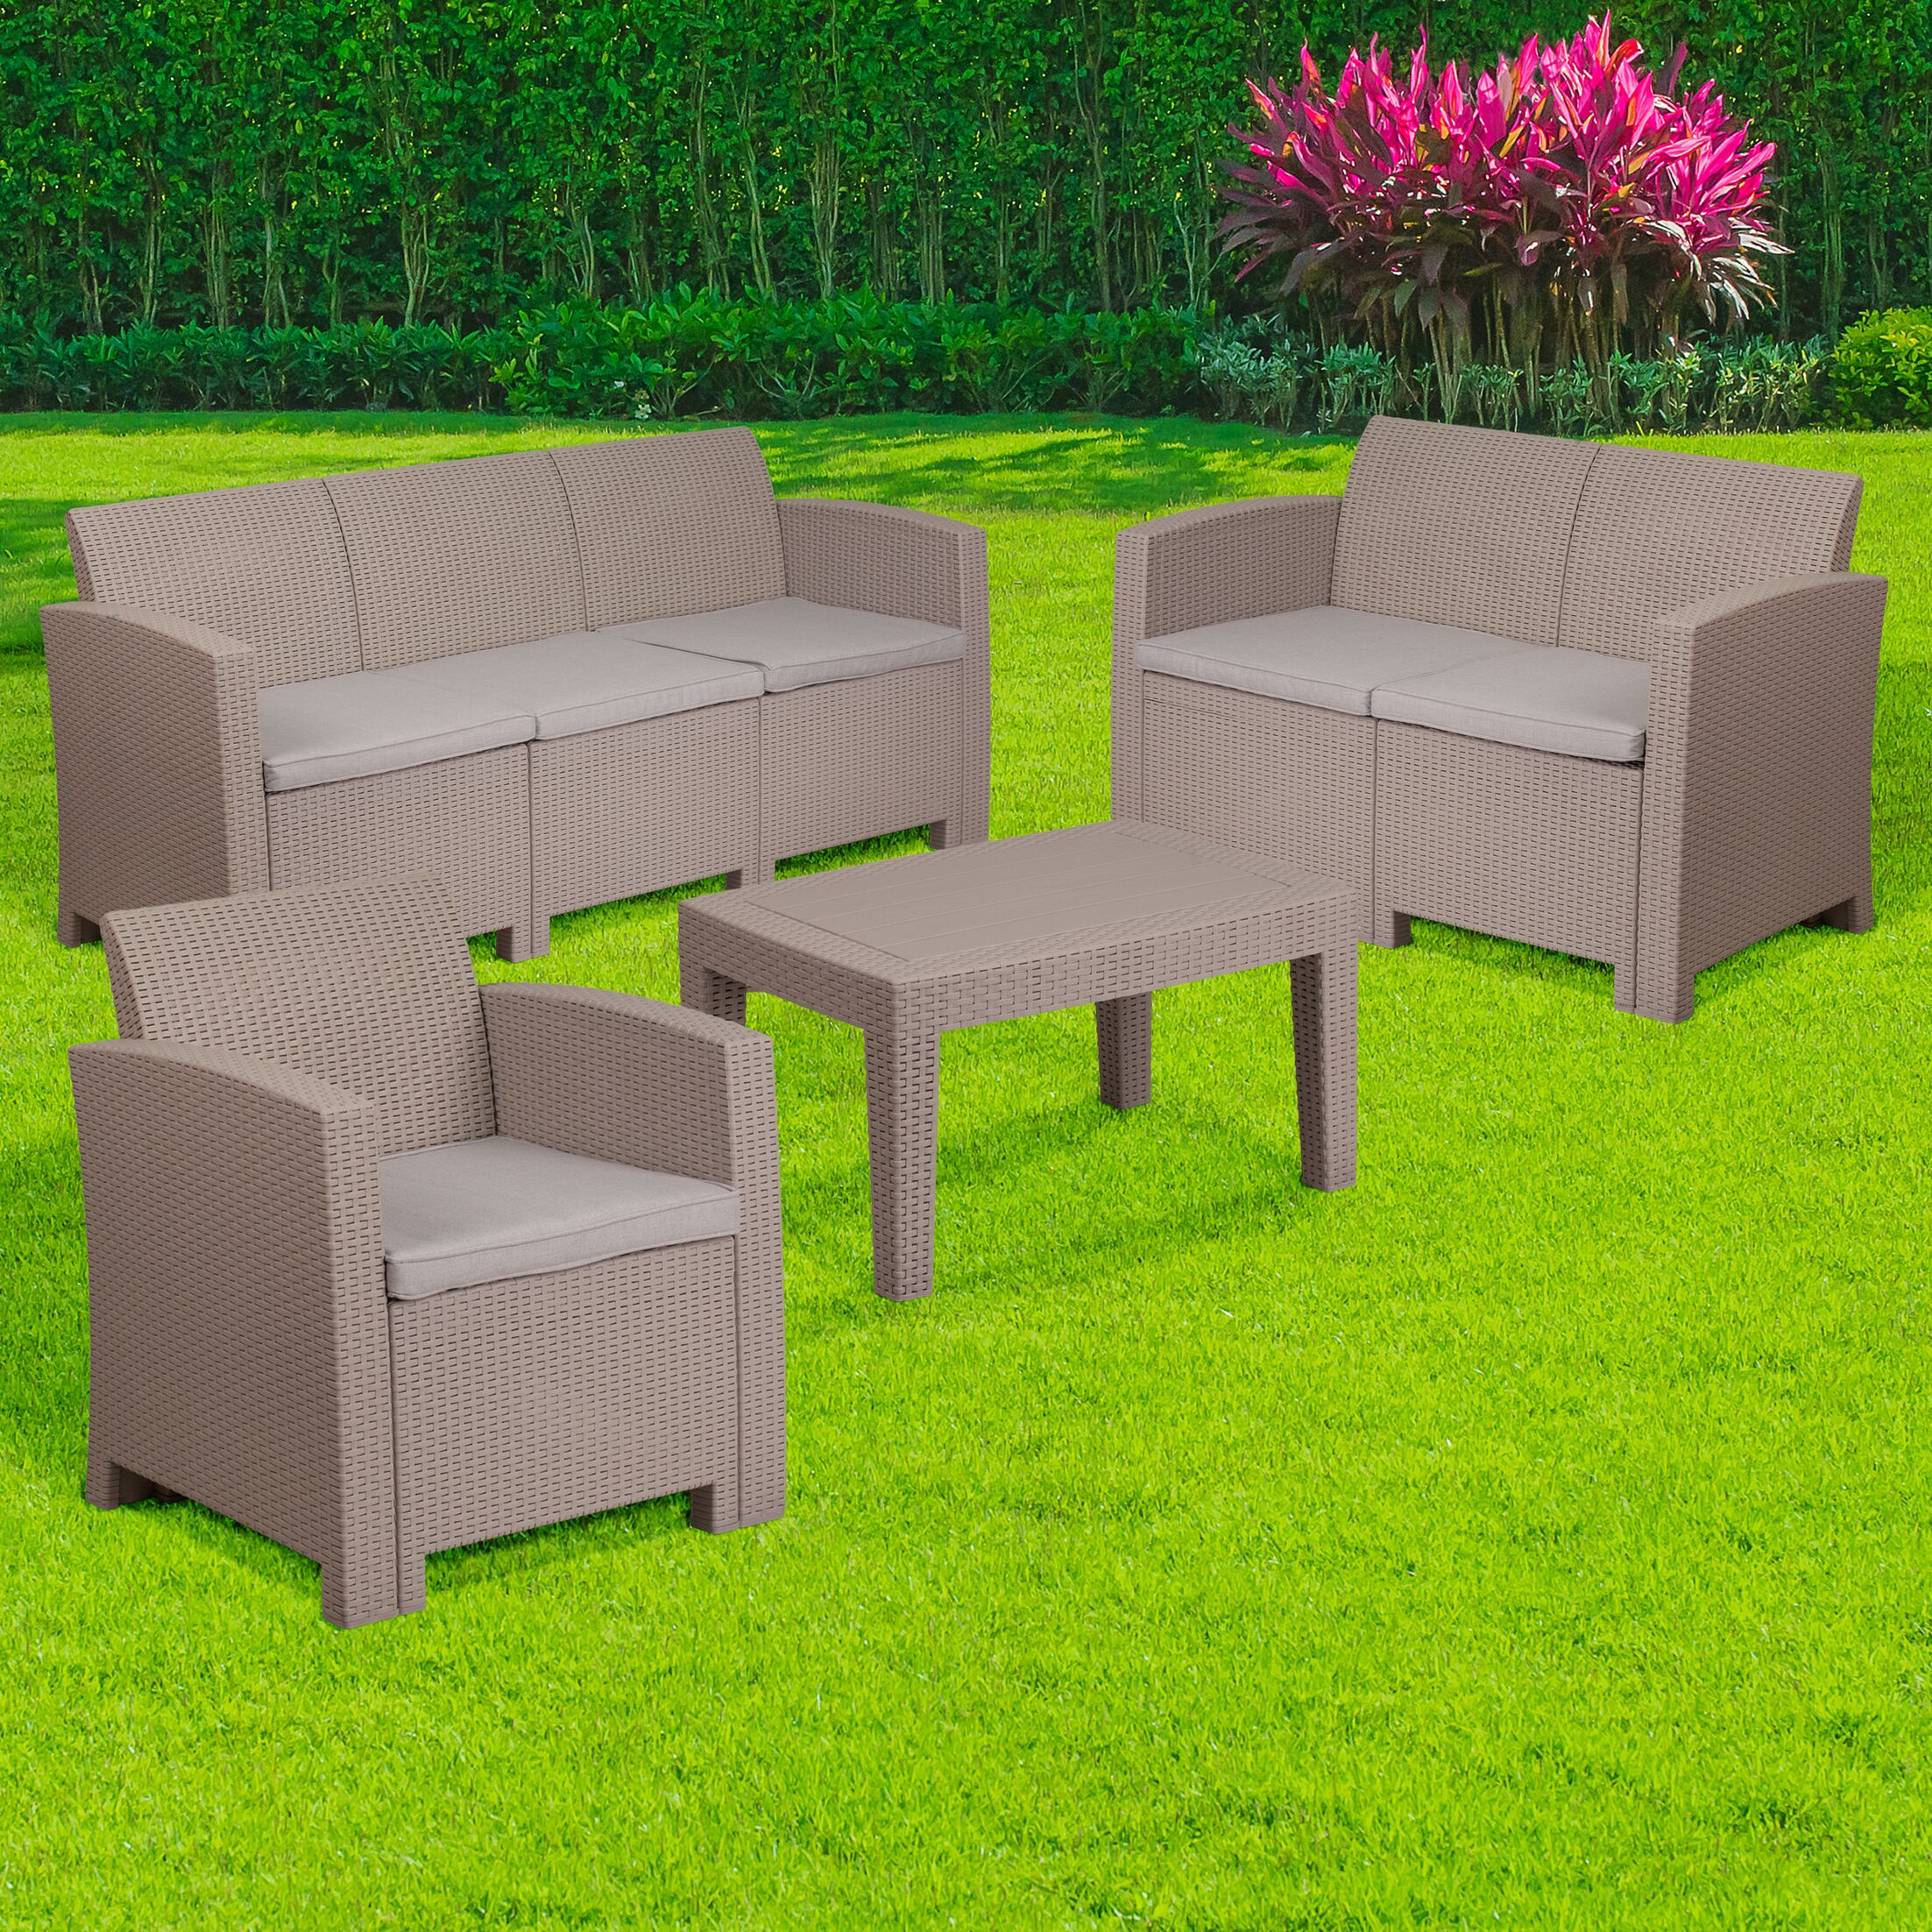 Resnick 4 Piece Rattan Sofa Set with Cushions